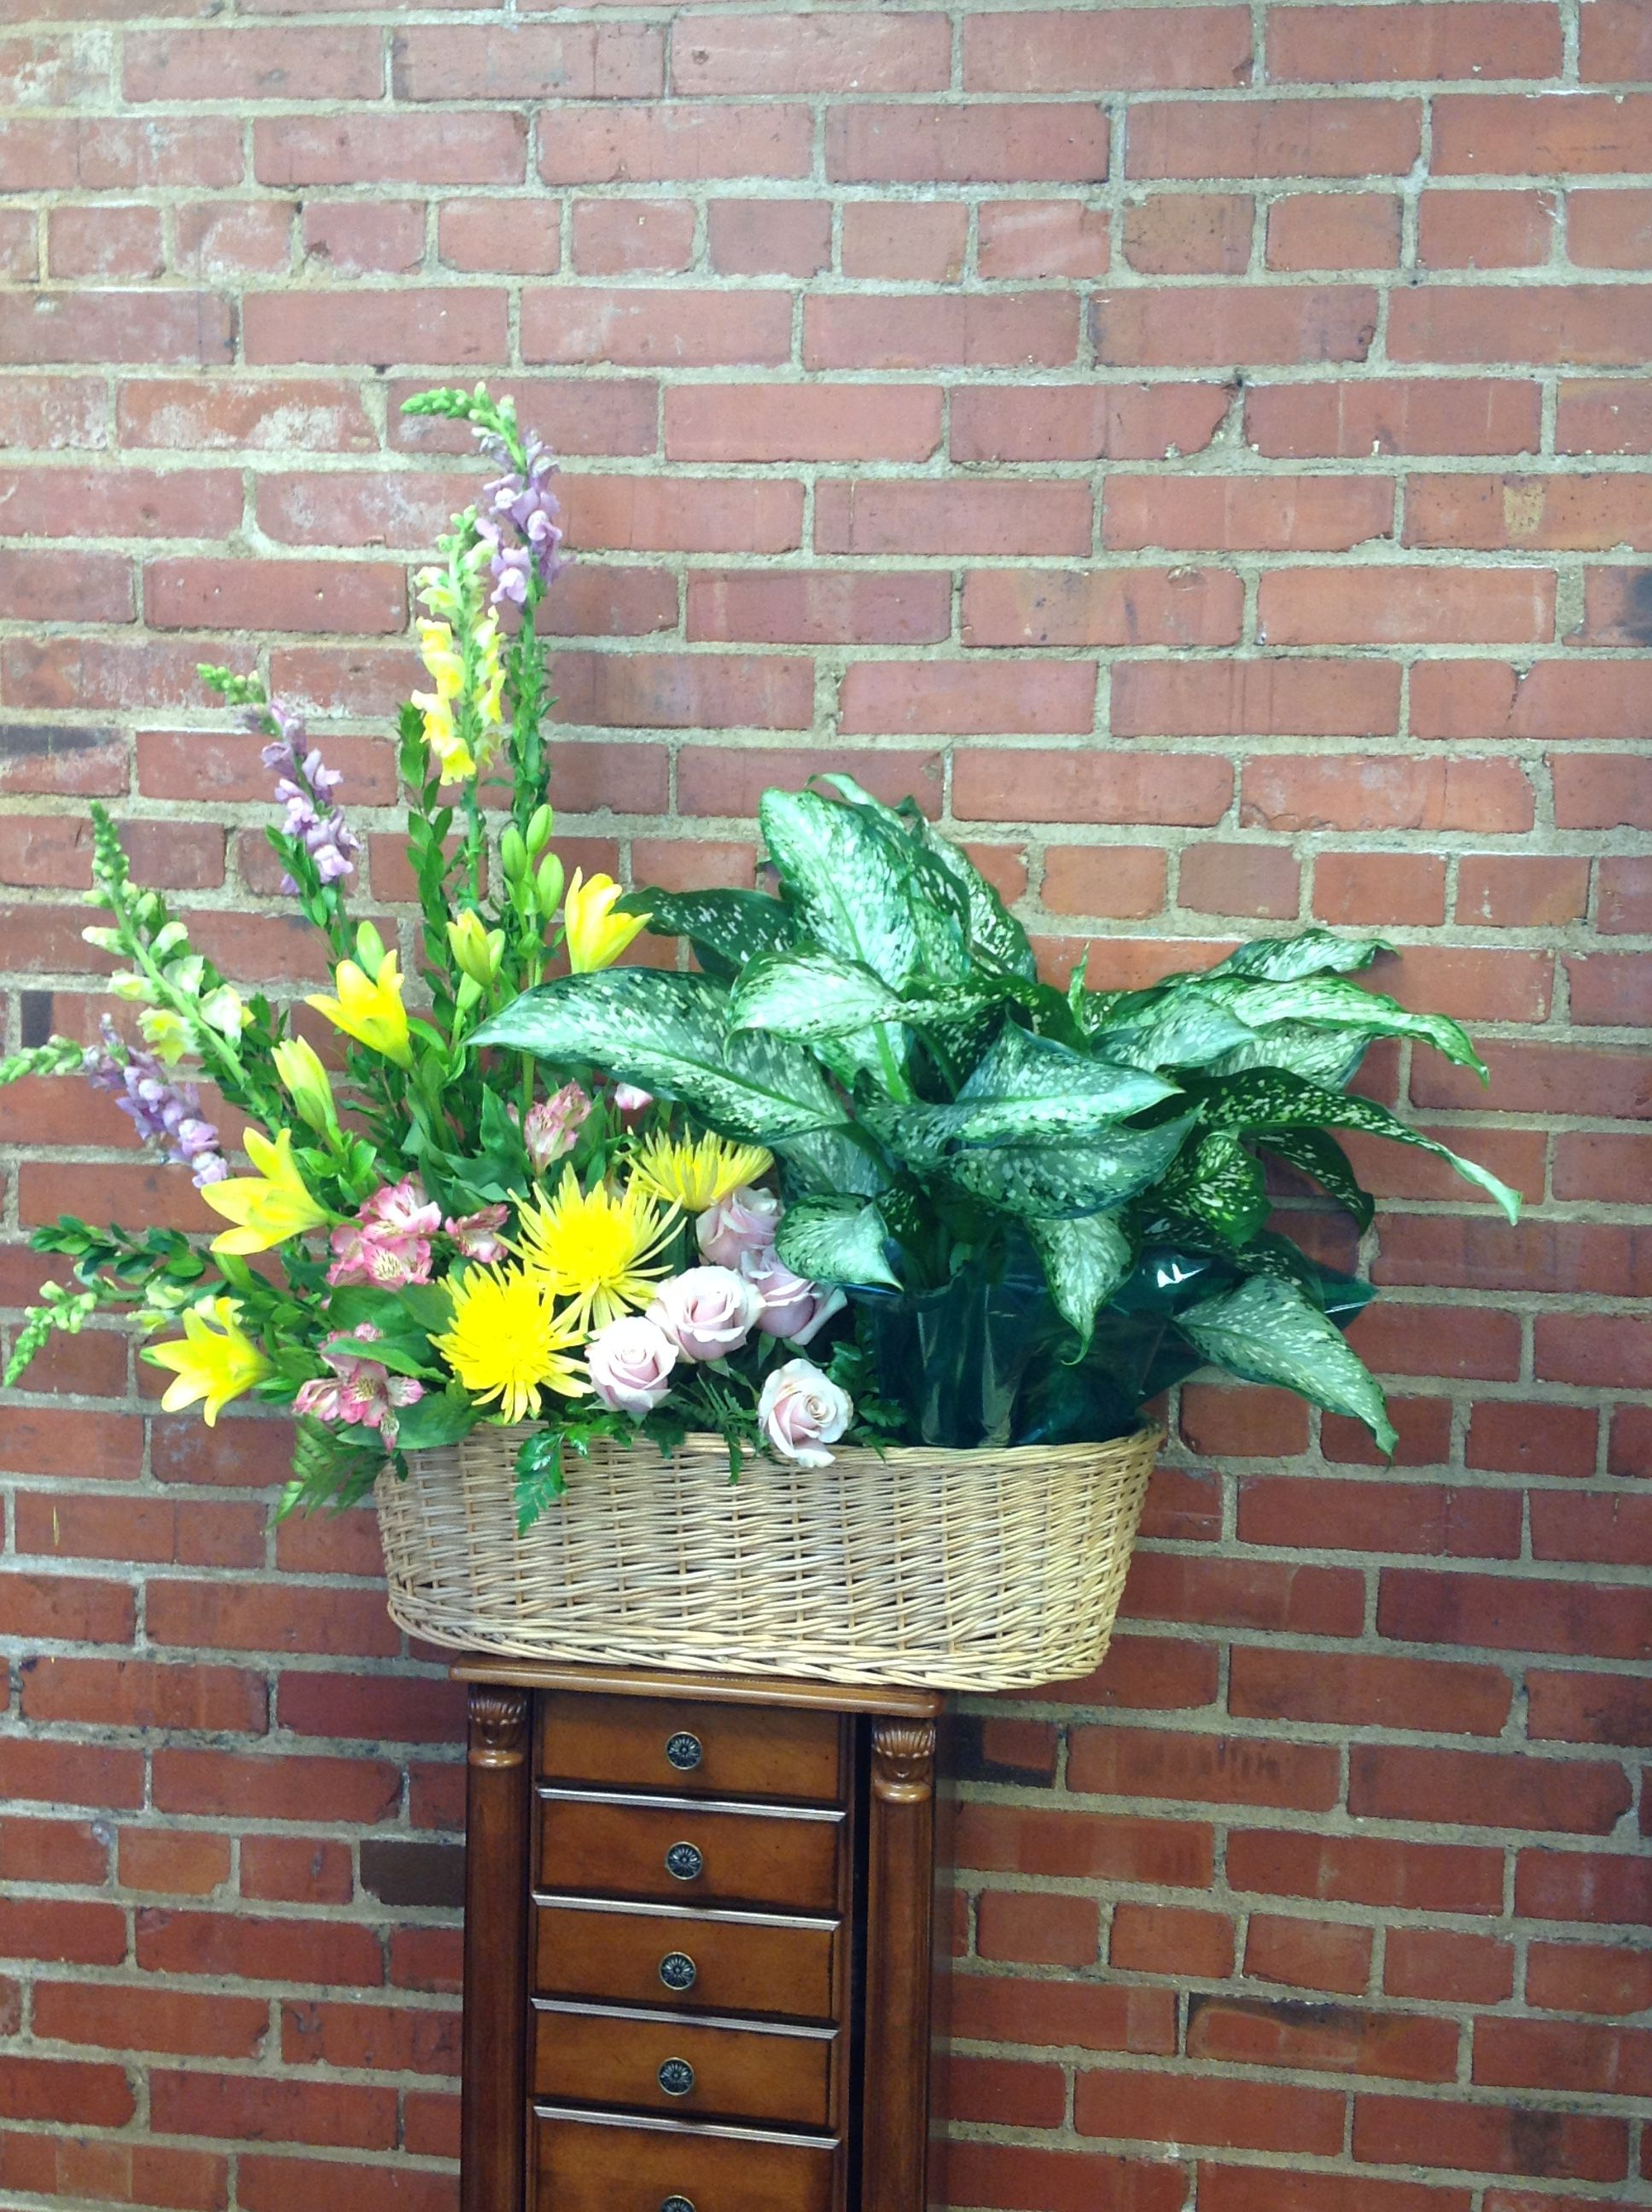 Green Plant With Pastel Flowers In A Peanut Basket Funeral